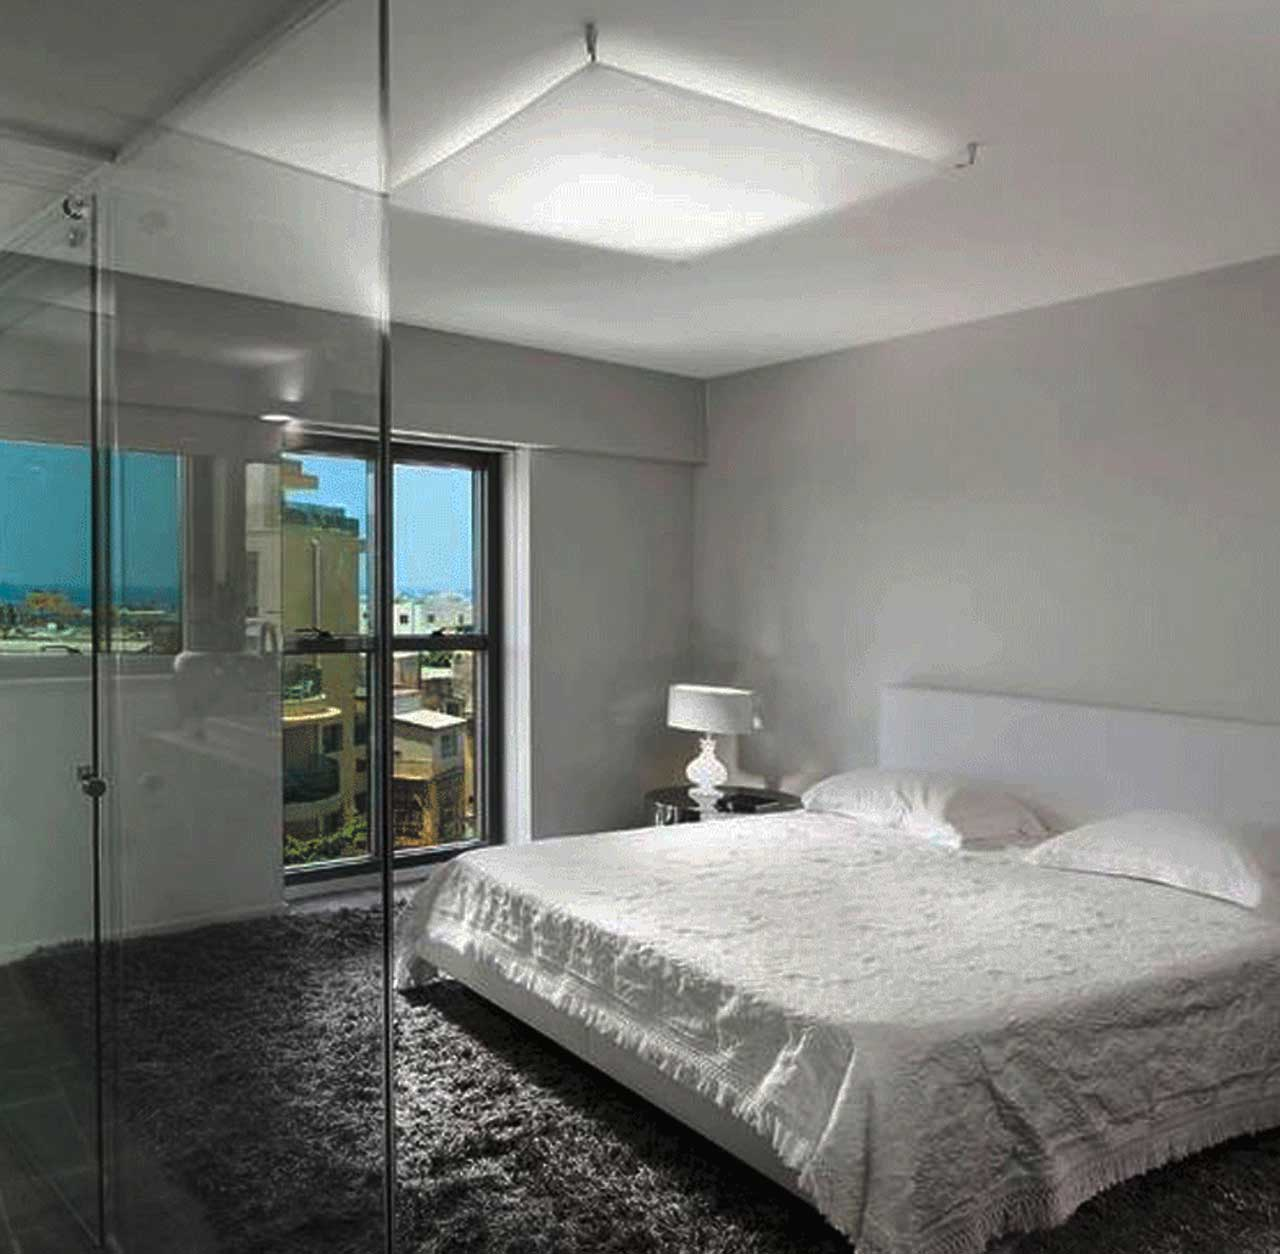 Switchable Smart Glass in hotel